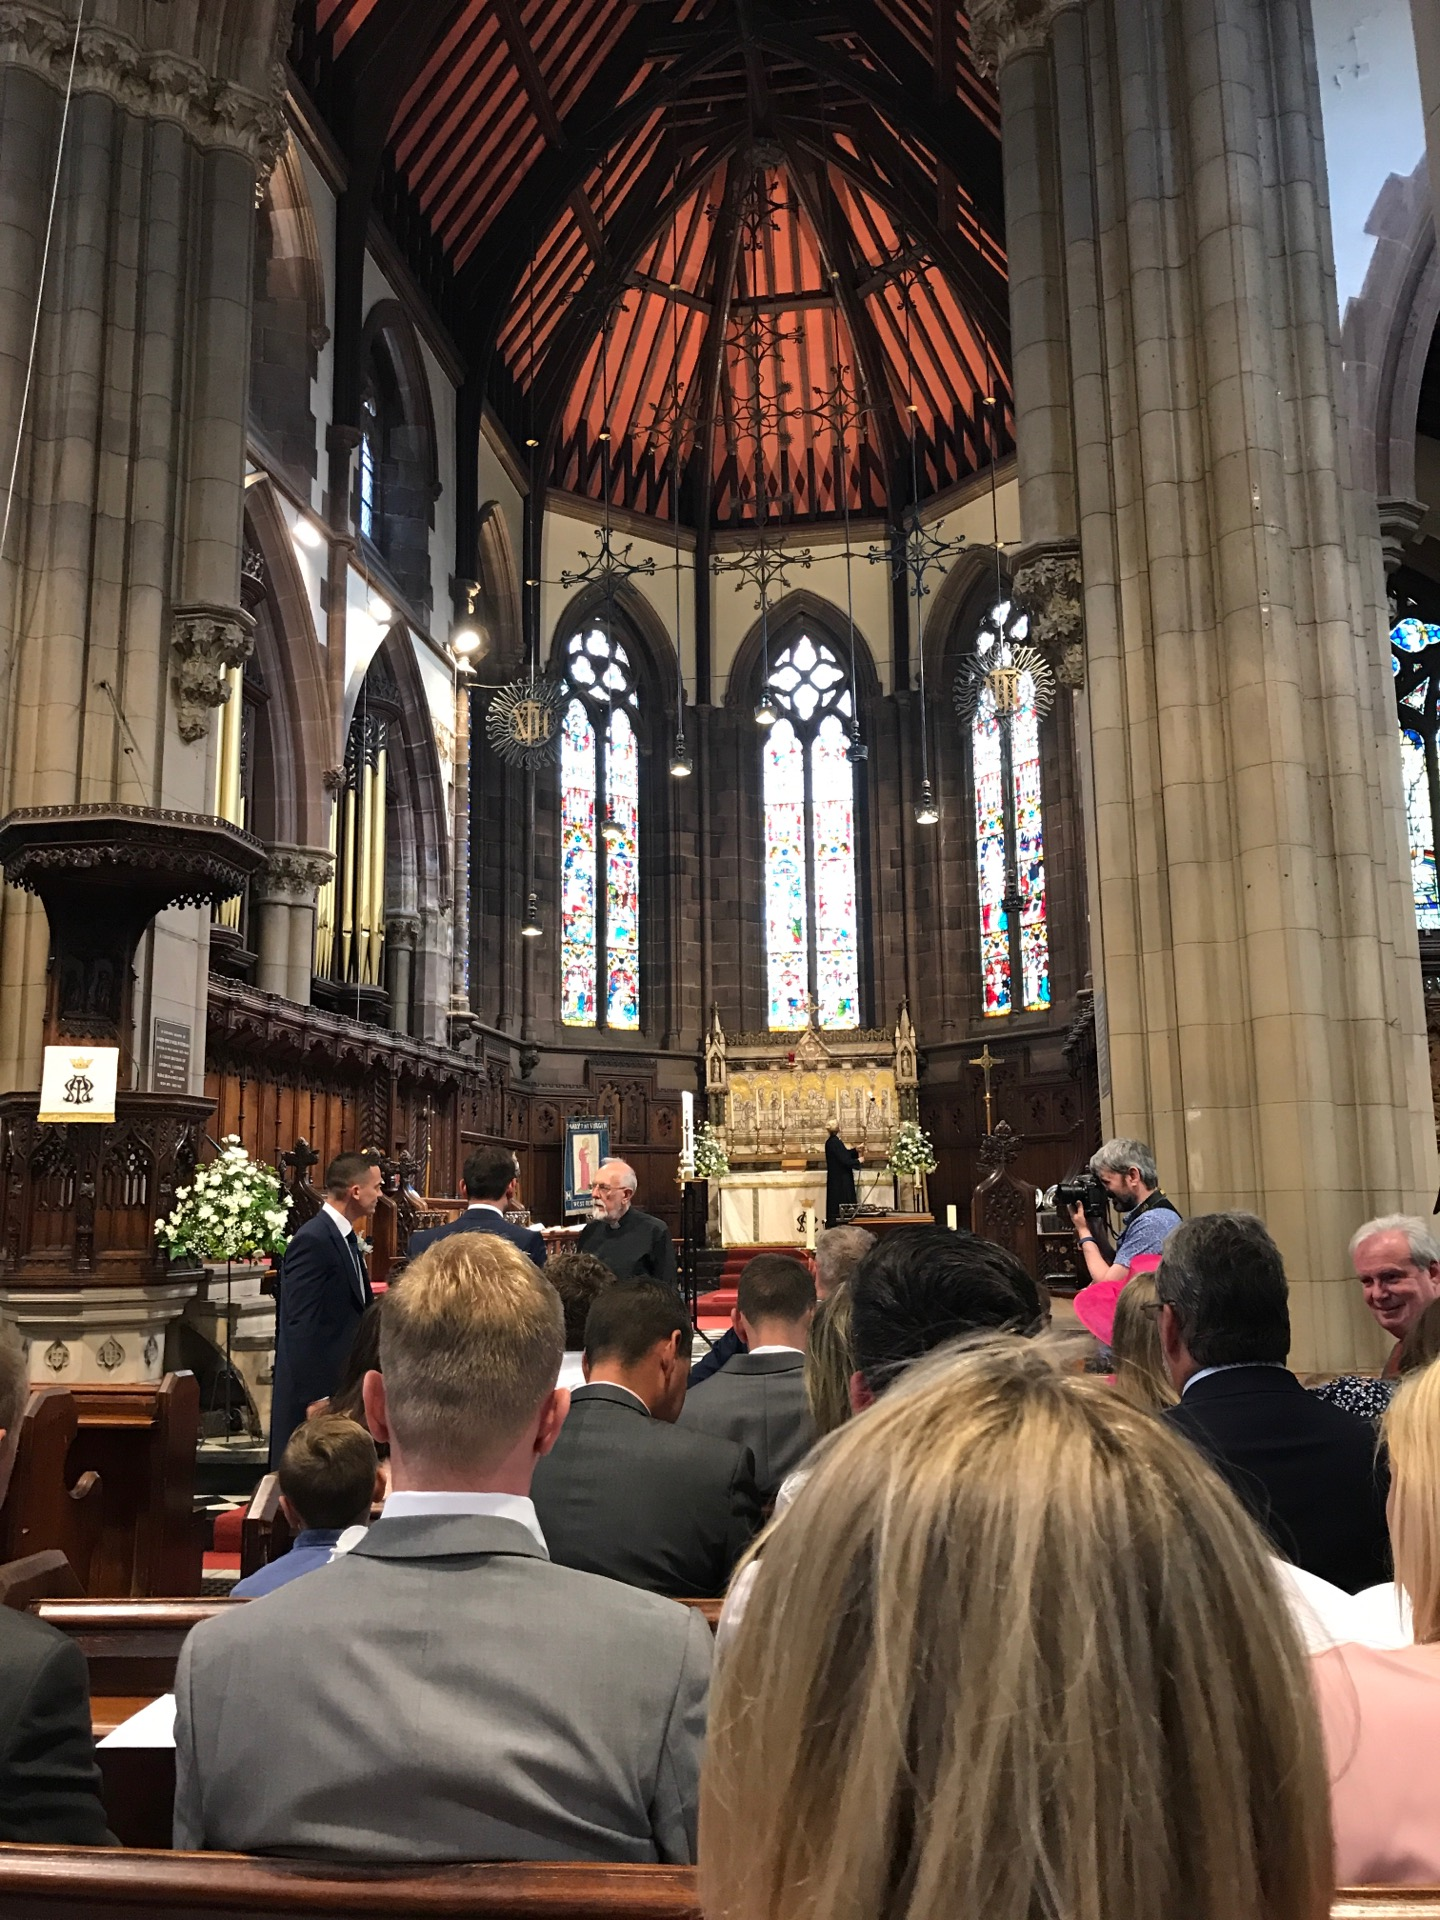 St. Mary The Virgin Church Of England   West Derby Village, Liverpool L12 5HW   +44 151 256 6600